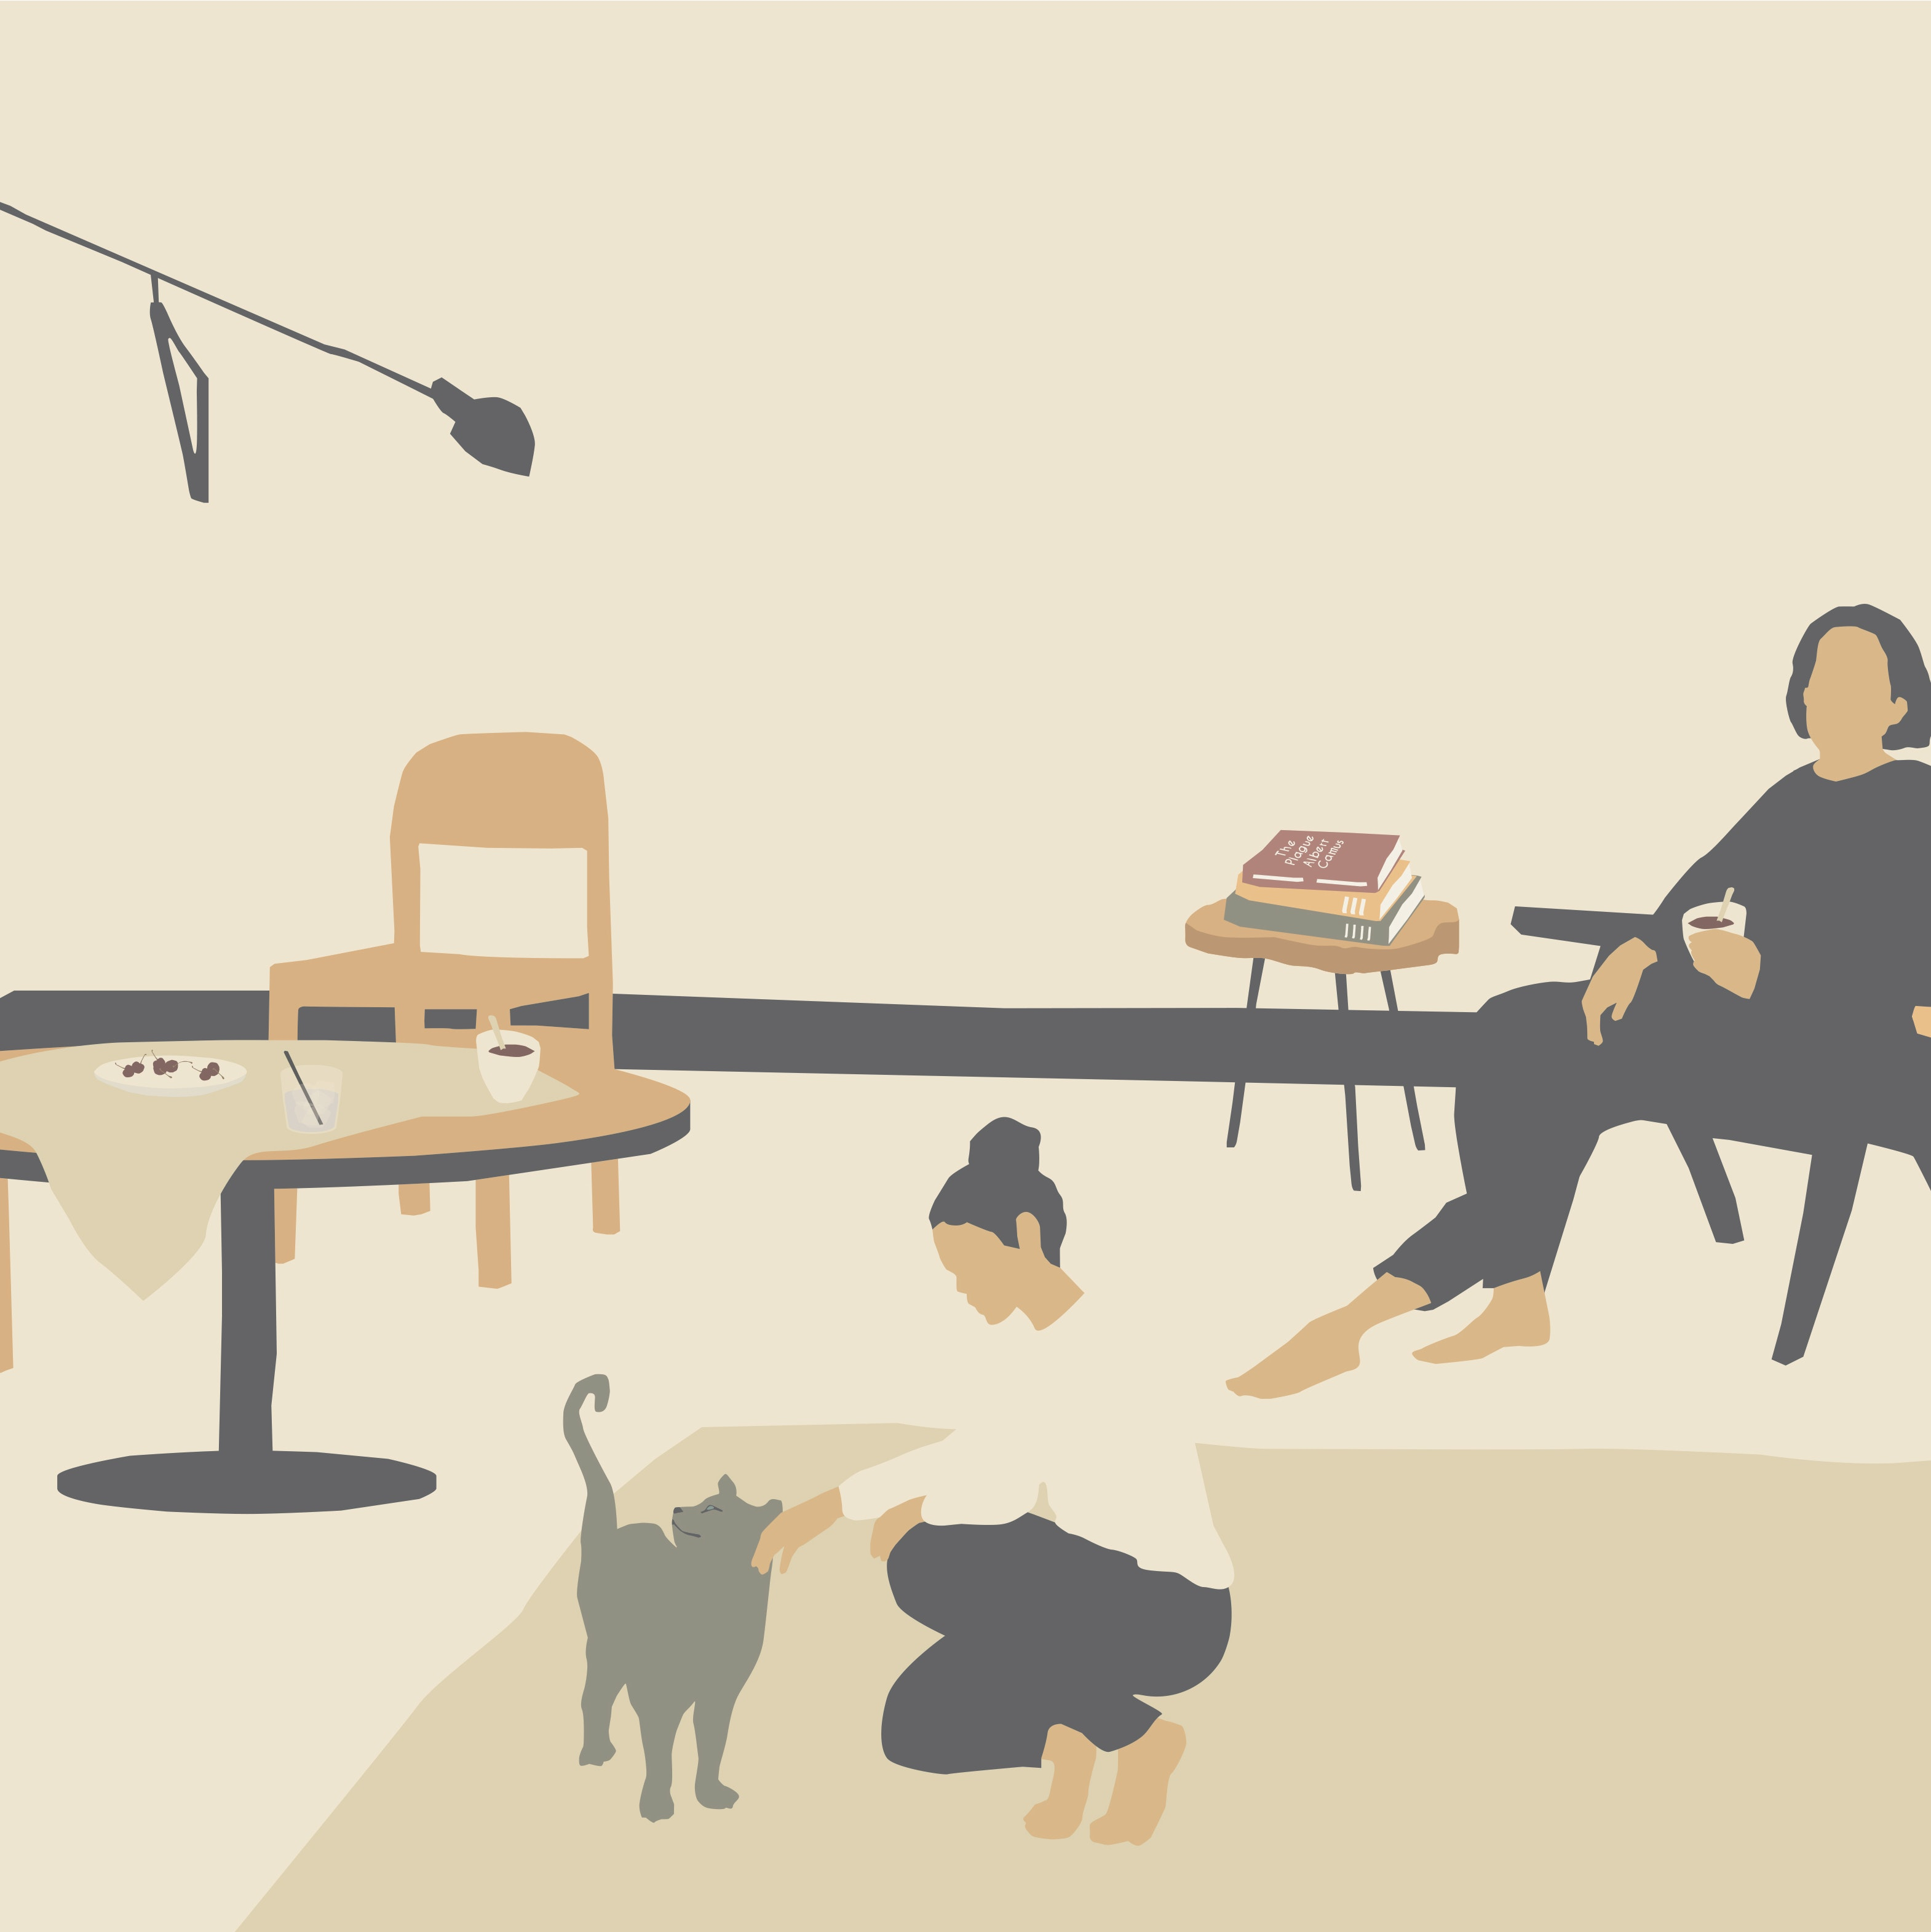 Illustration of a classroom, one person seated and one person petting a cat